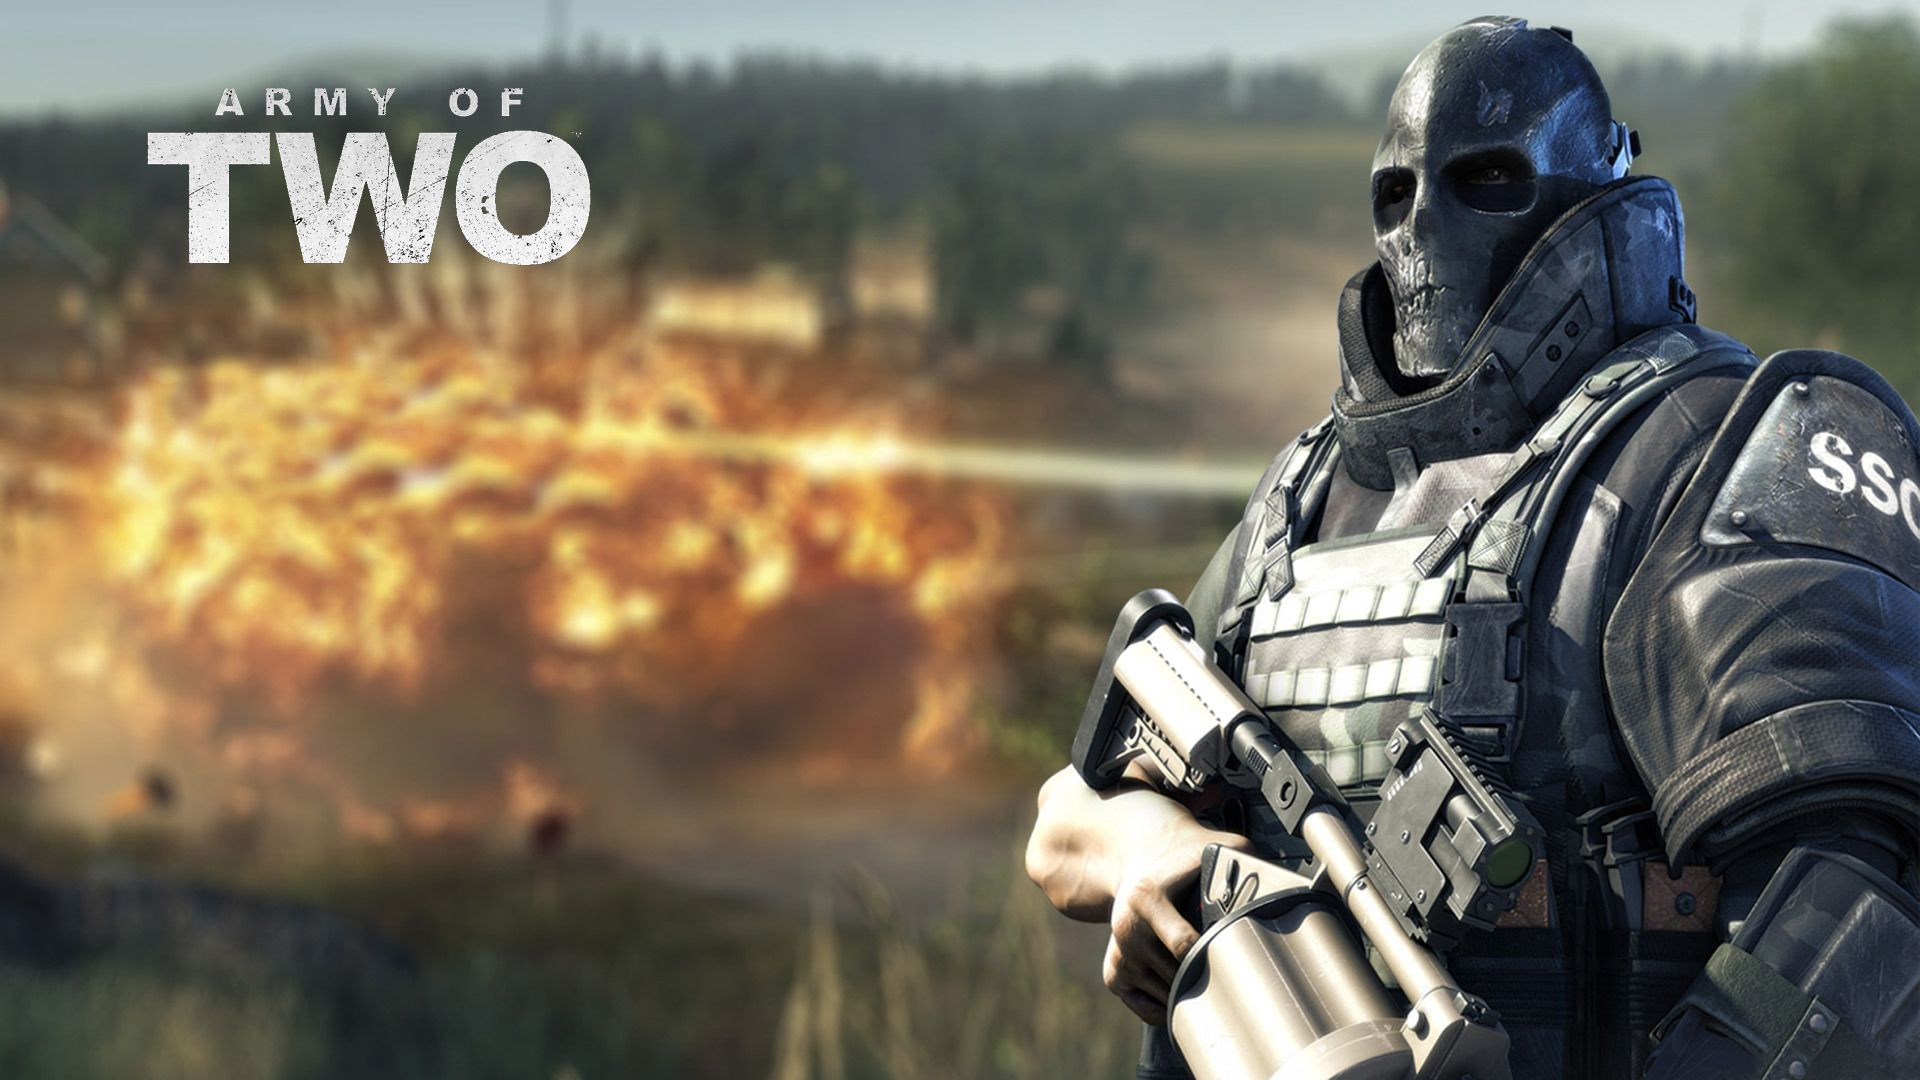 army of two feelgrafix pinterest xbox and wallpaper